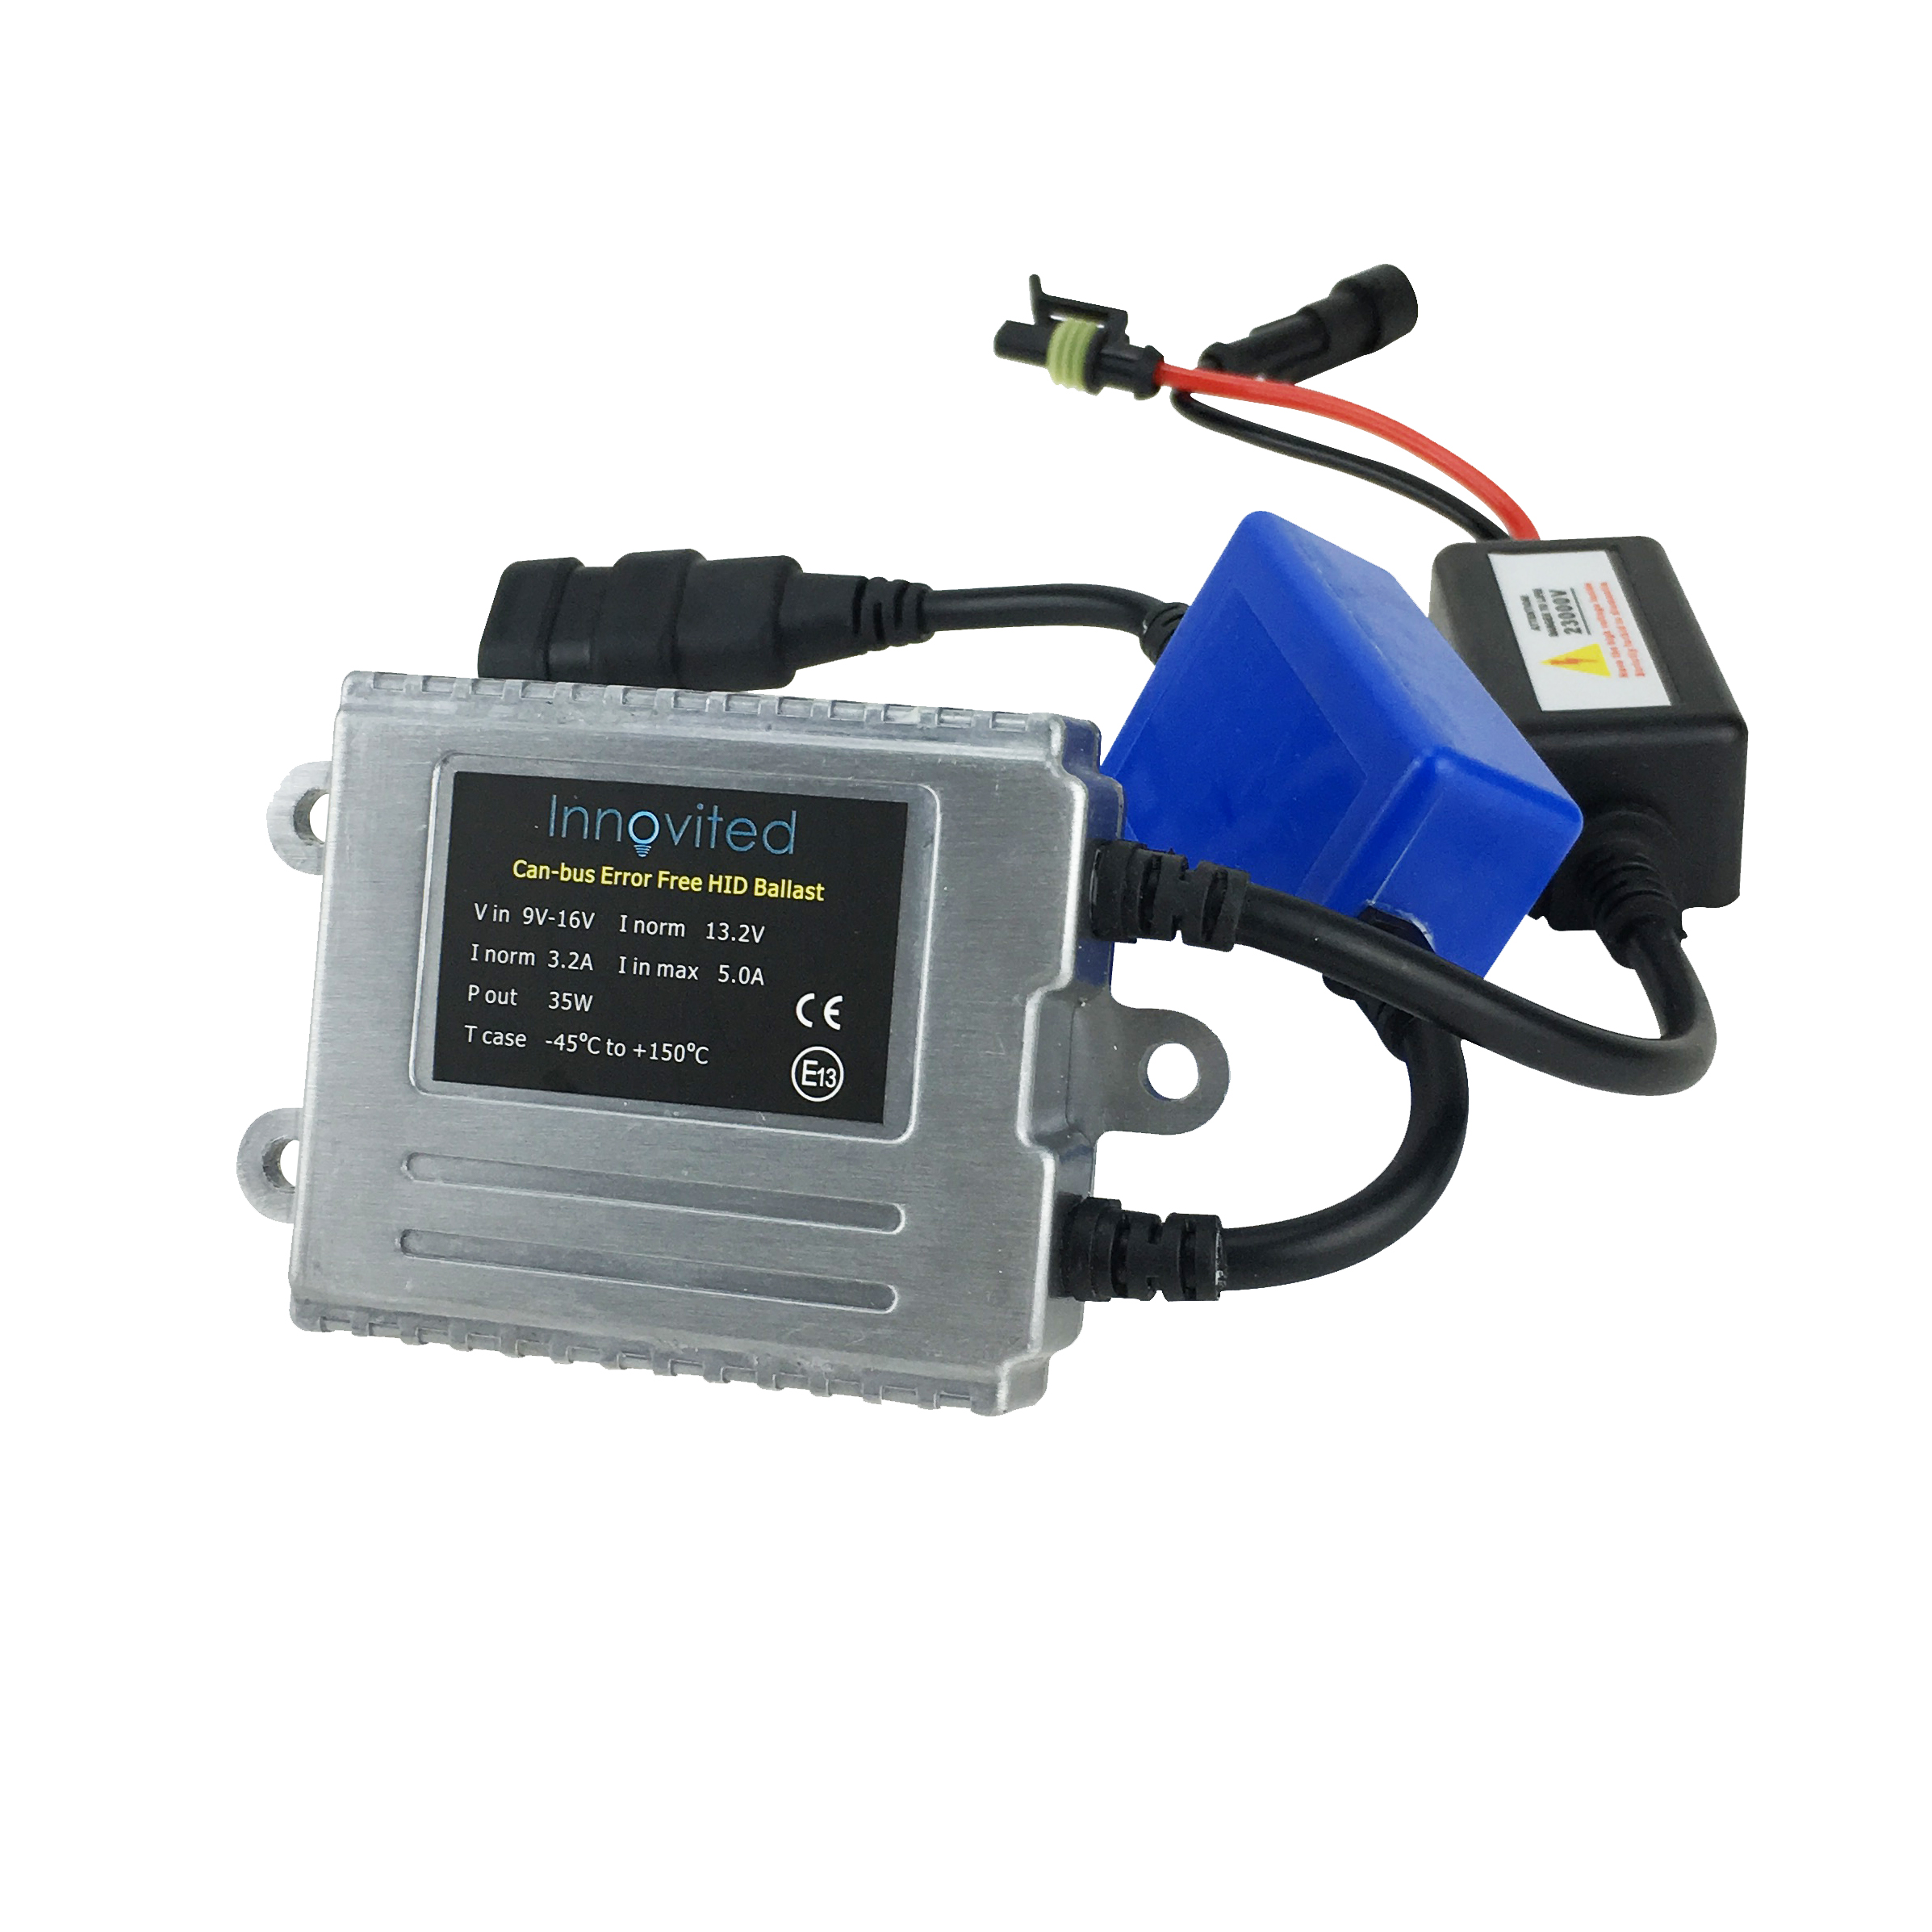 AC Canbus Error Free Canceller Digital HID Ballast For VW Mercedes on dodge oem parts diagram, h13 bulb wiring, h13 hid wiring, project diagram, h13 connector diagram,